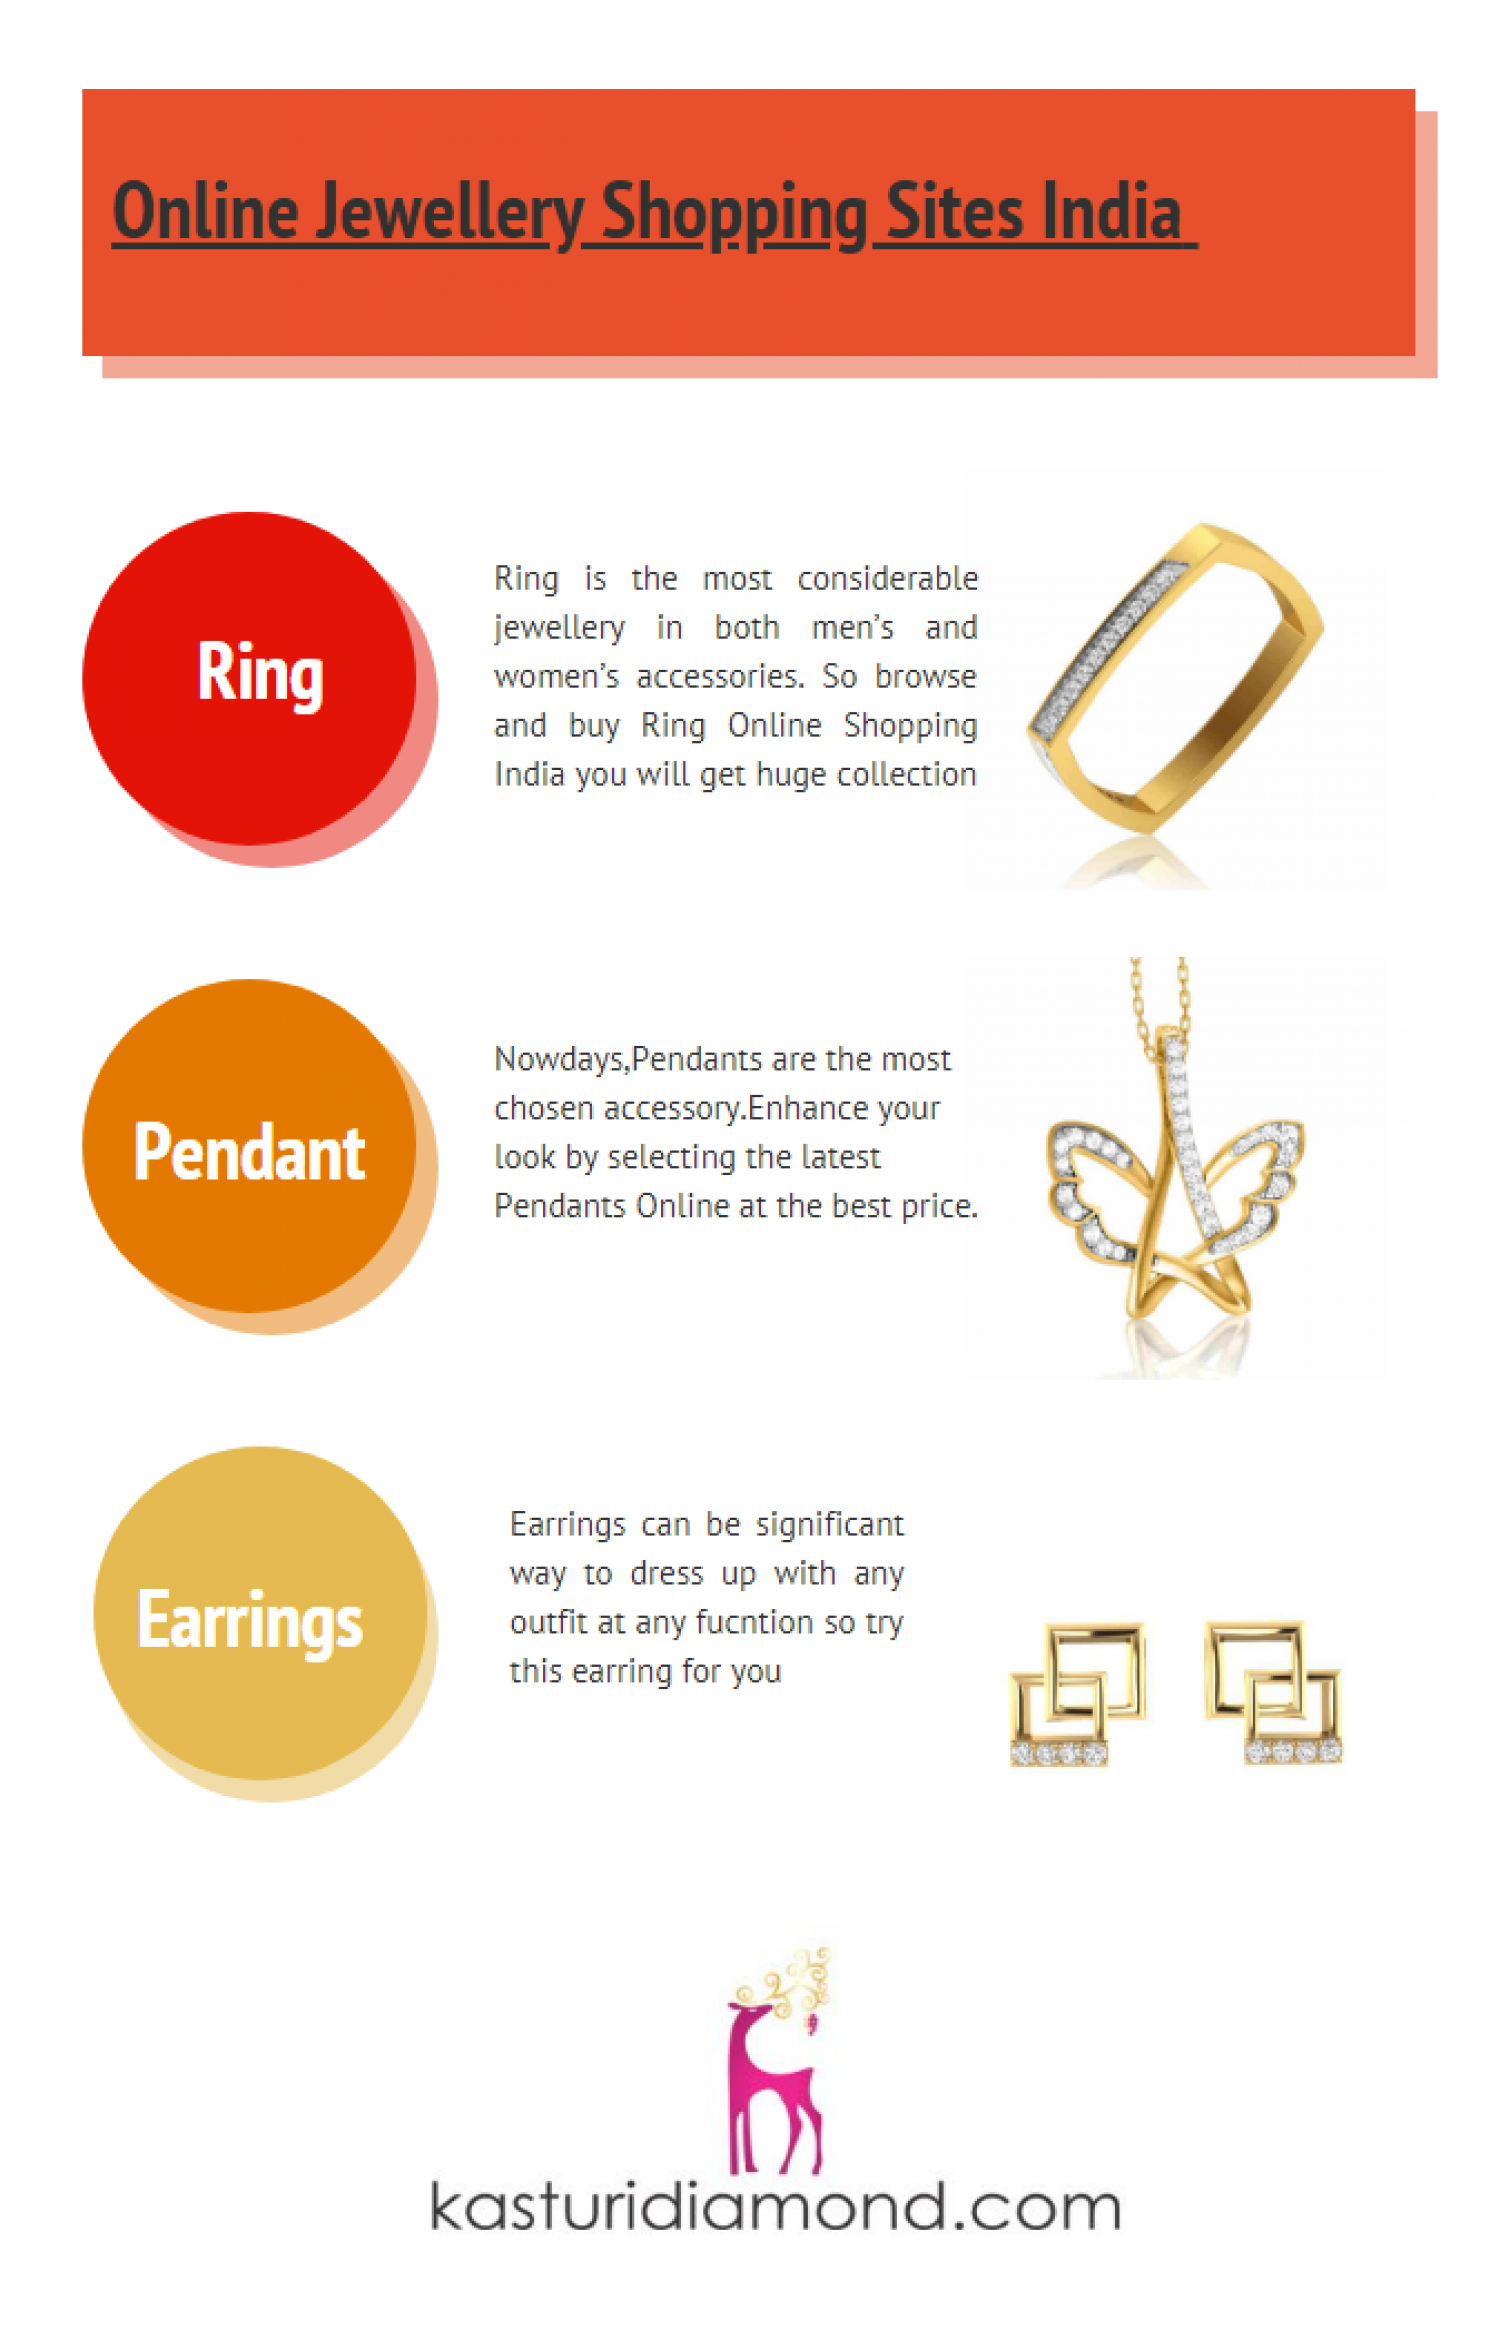 Online Jewellery Shopping Sites India Infographic